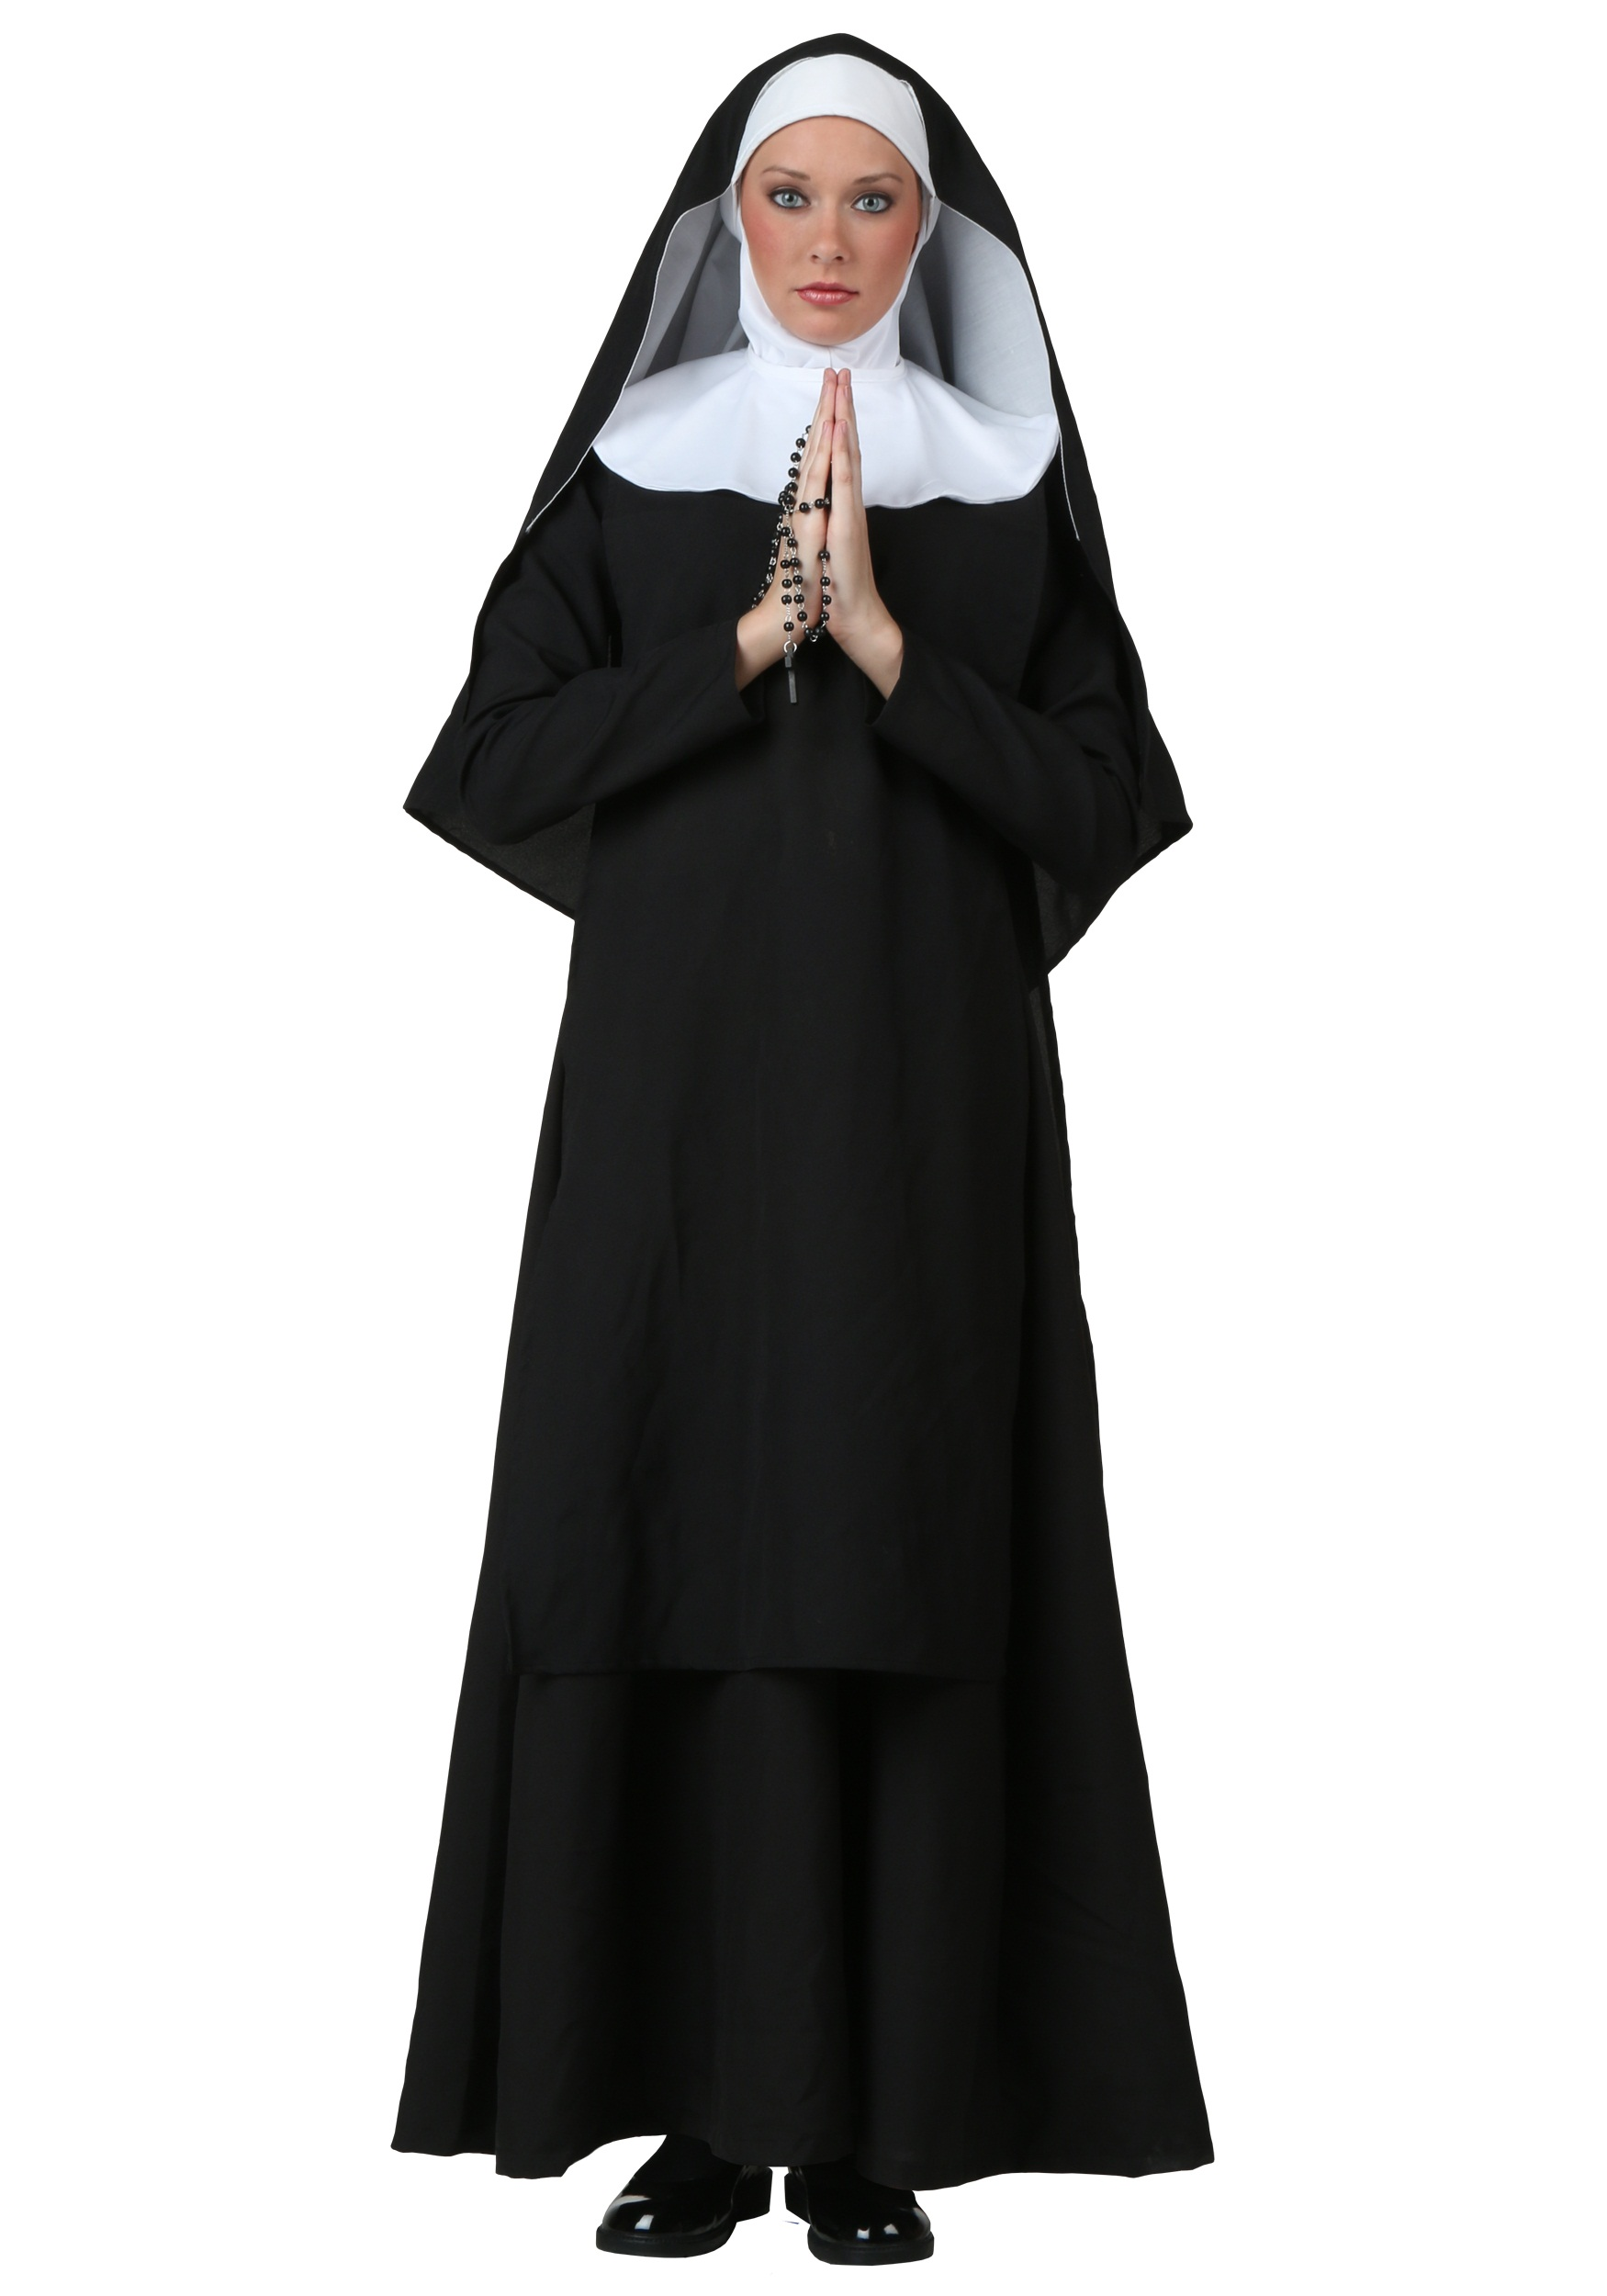 Deluxe_Nun_Plus_Size_Costume_for_Women